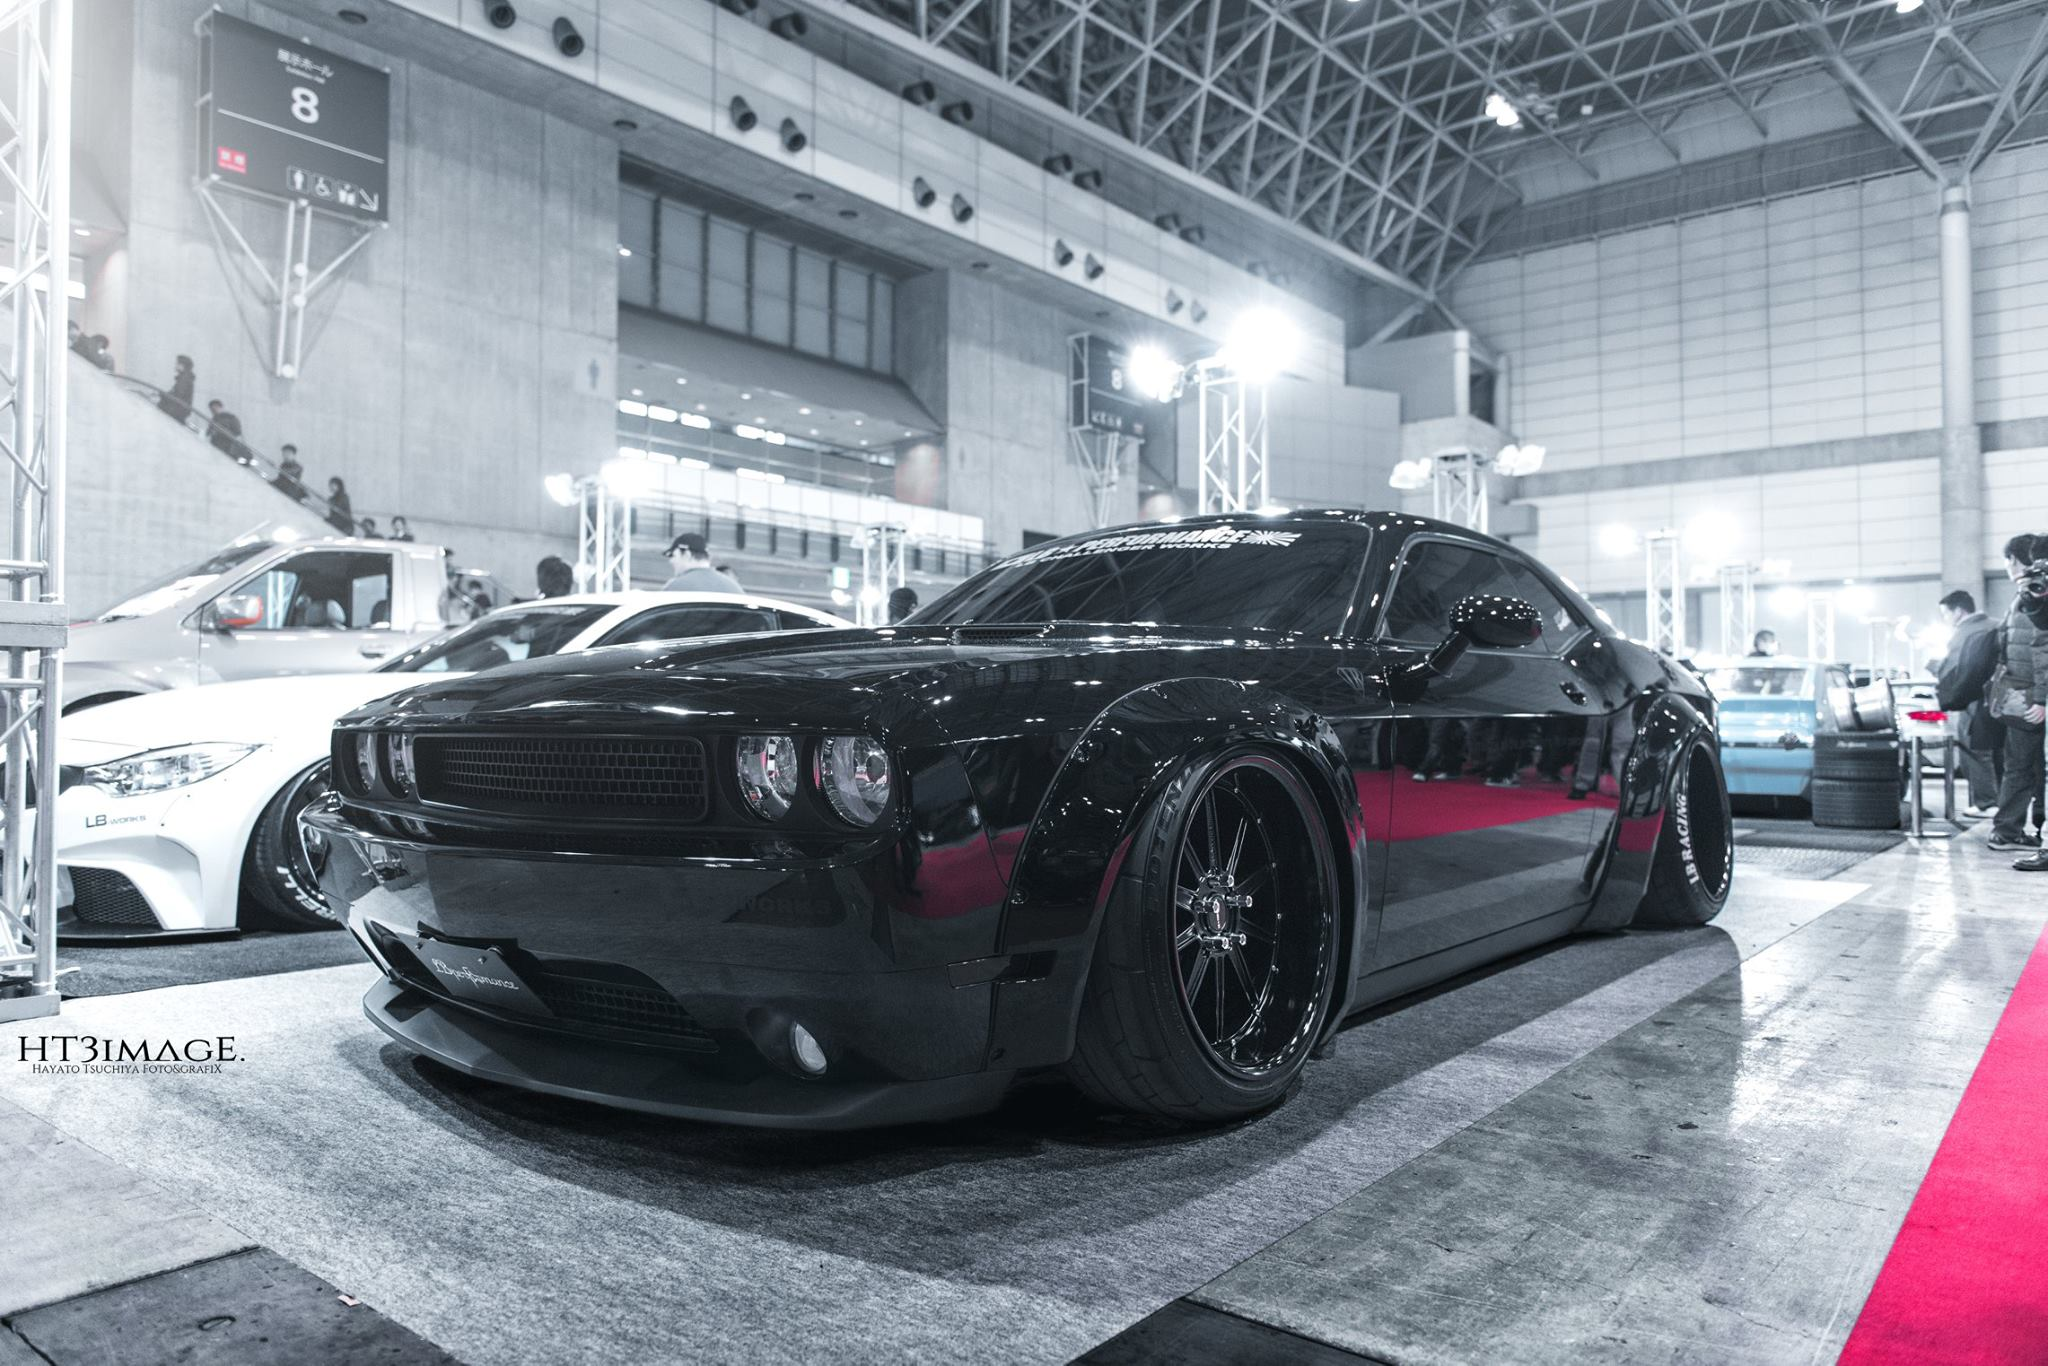 Dodge Challenger Stance >> LB Performance x Dodge Challenger. | StanceNation™ // Form > Function